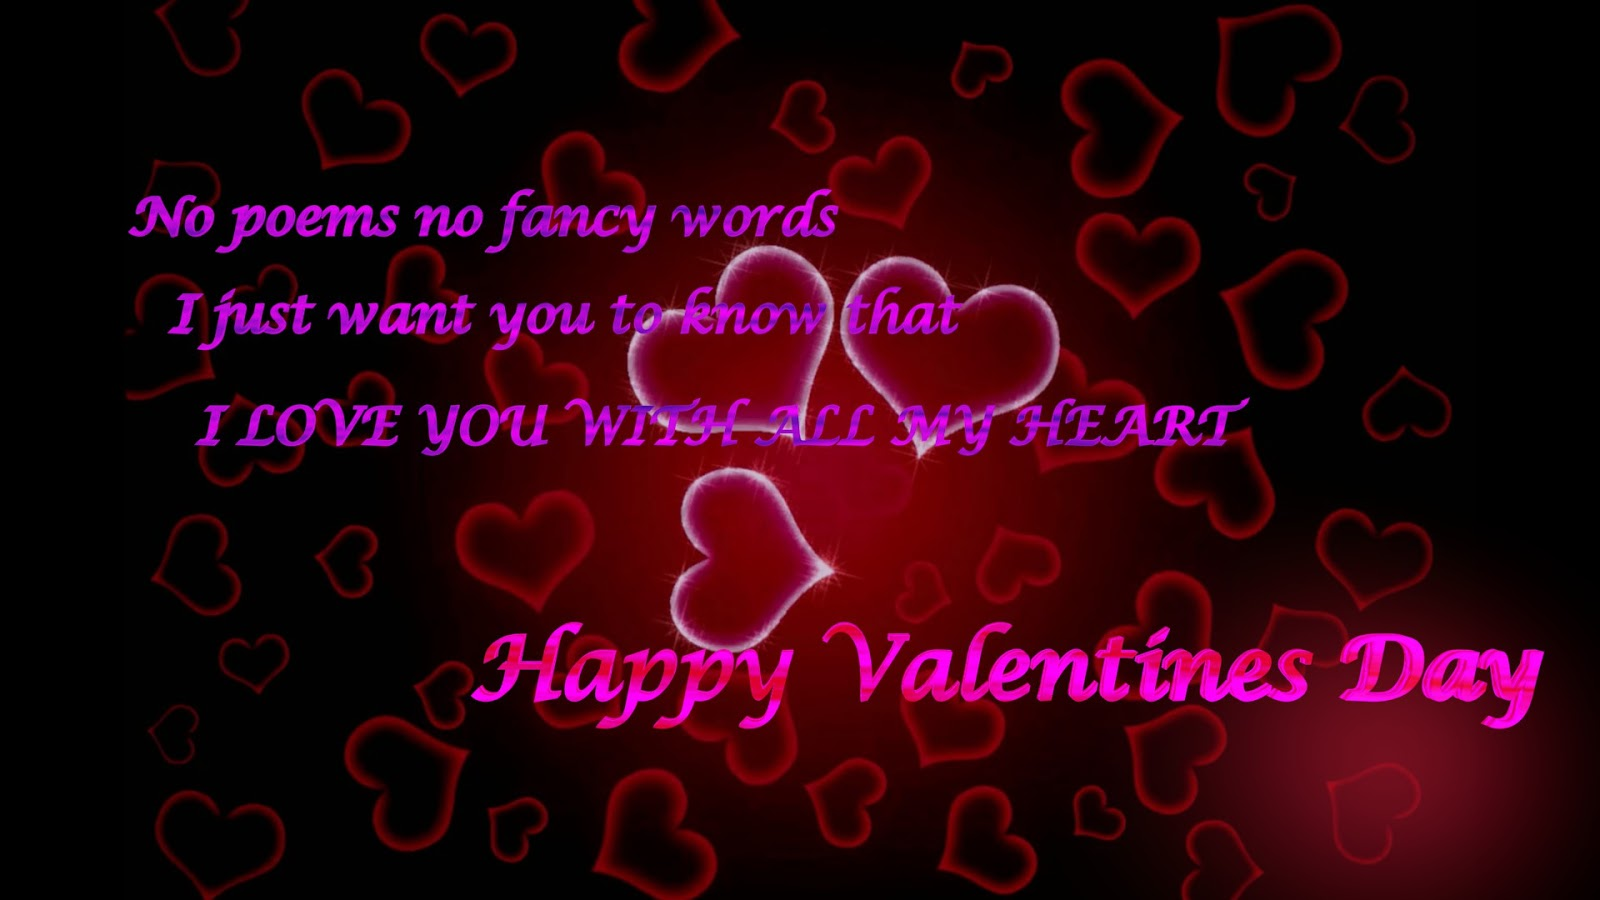 I Love You Quotes Valentines Day : Valentine Day 2017 Wishes Wallpapers and Quotes - Happy Valentine Day ...